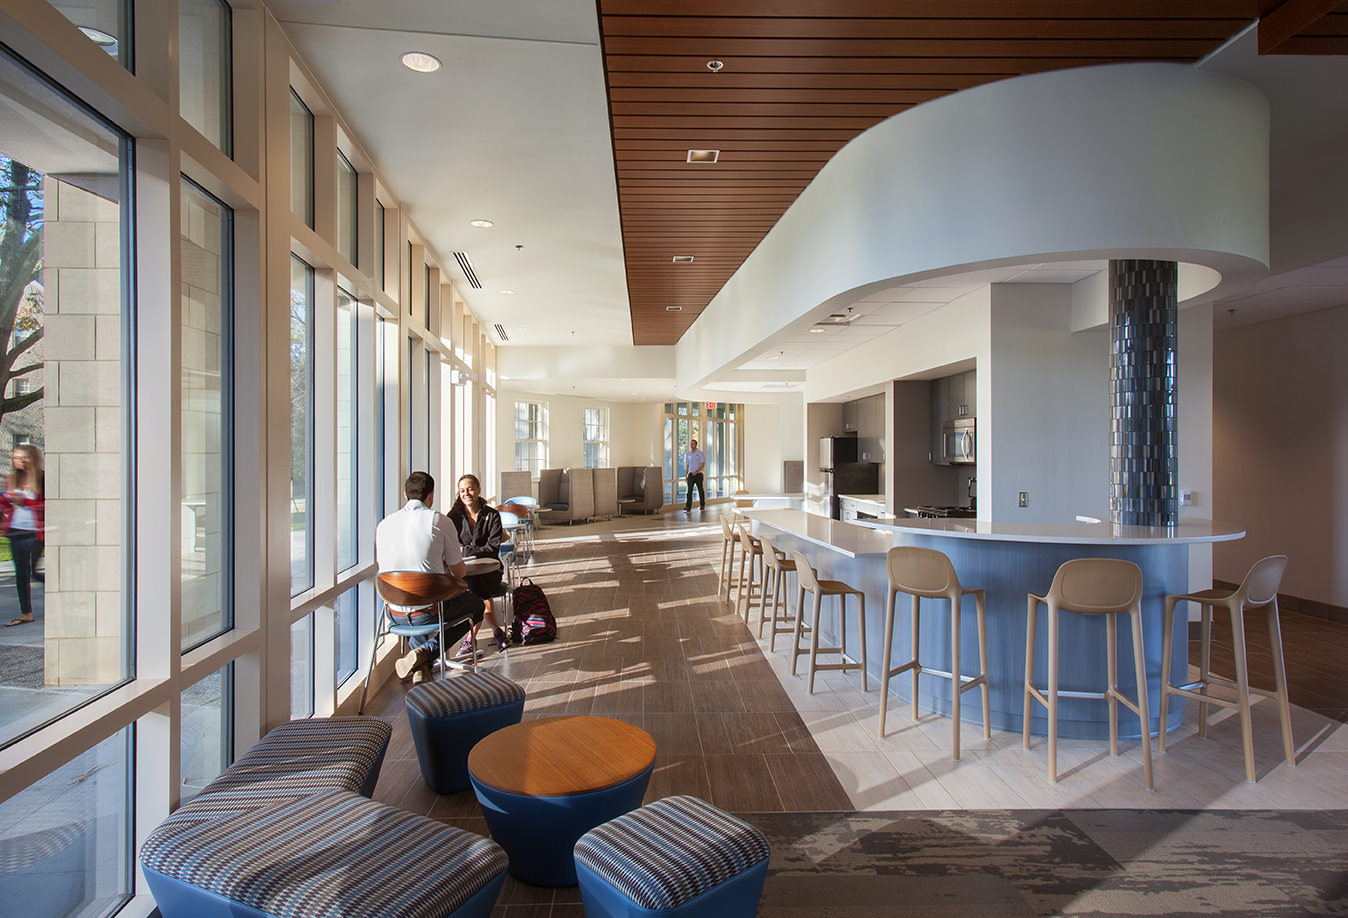 Miami University Residence Halls Interior Design Miami